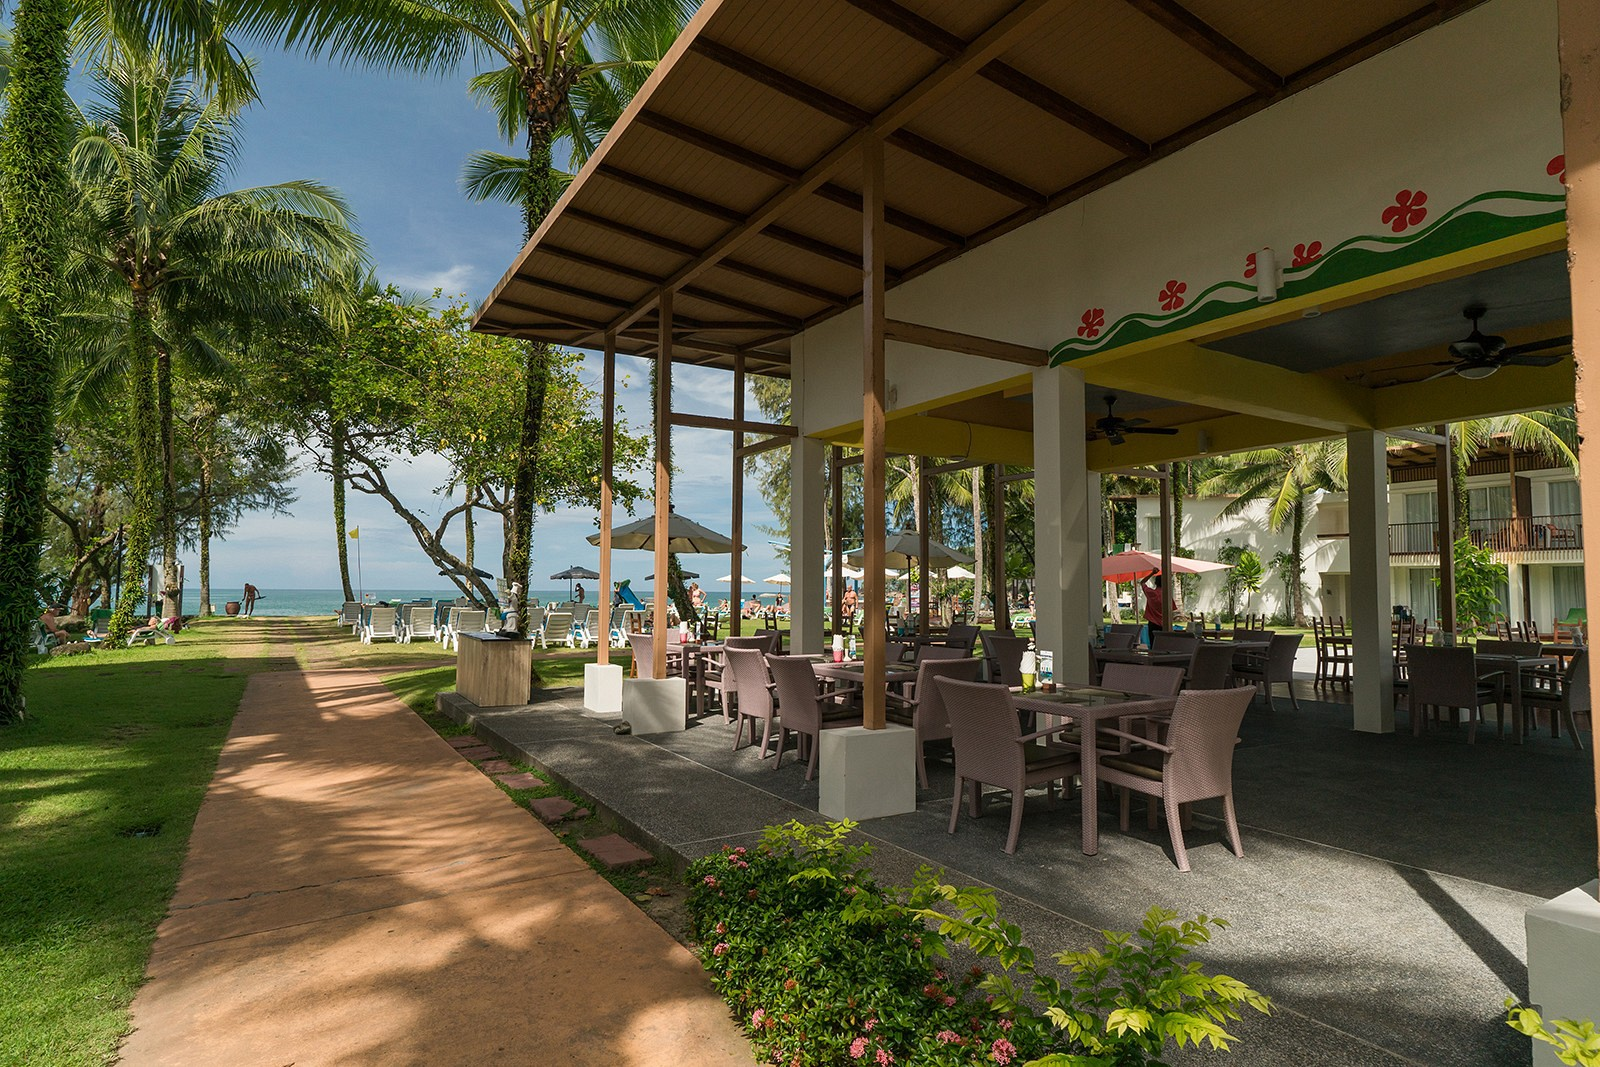 The Briza Beach Resort Khao Lak